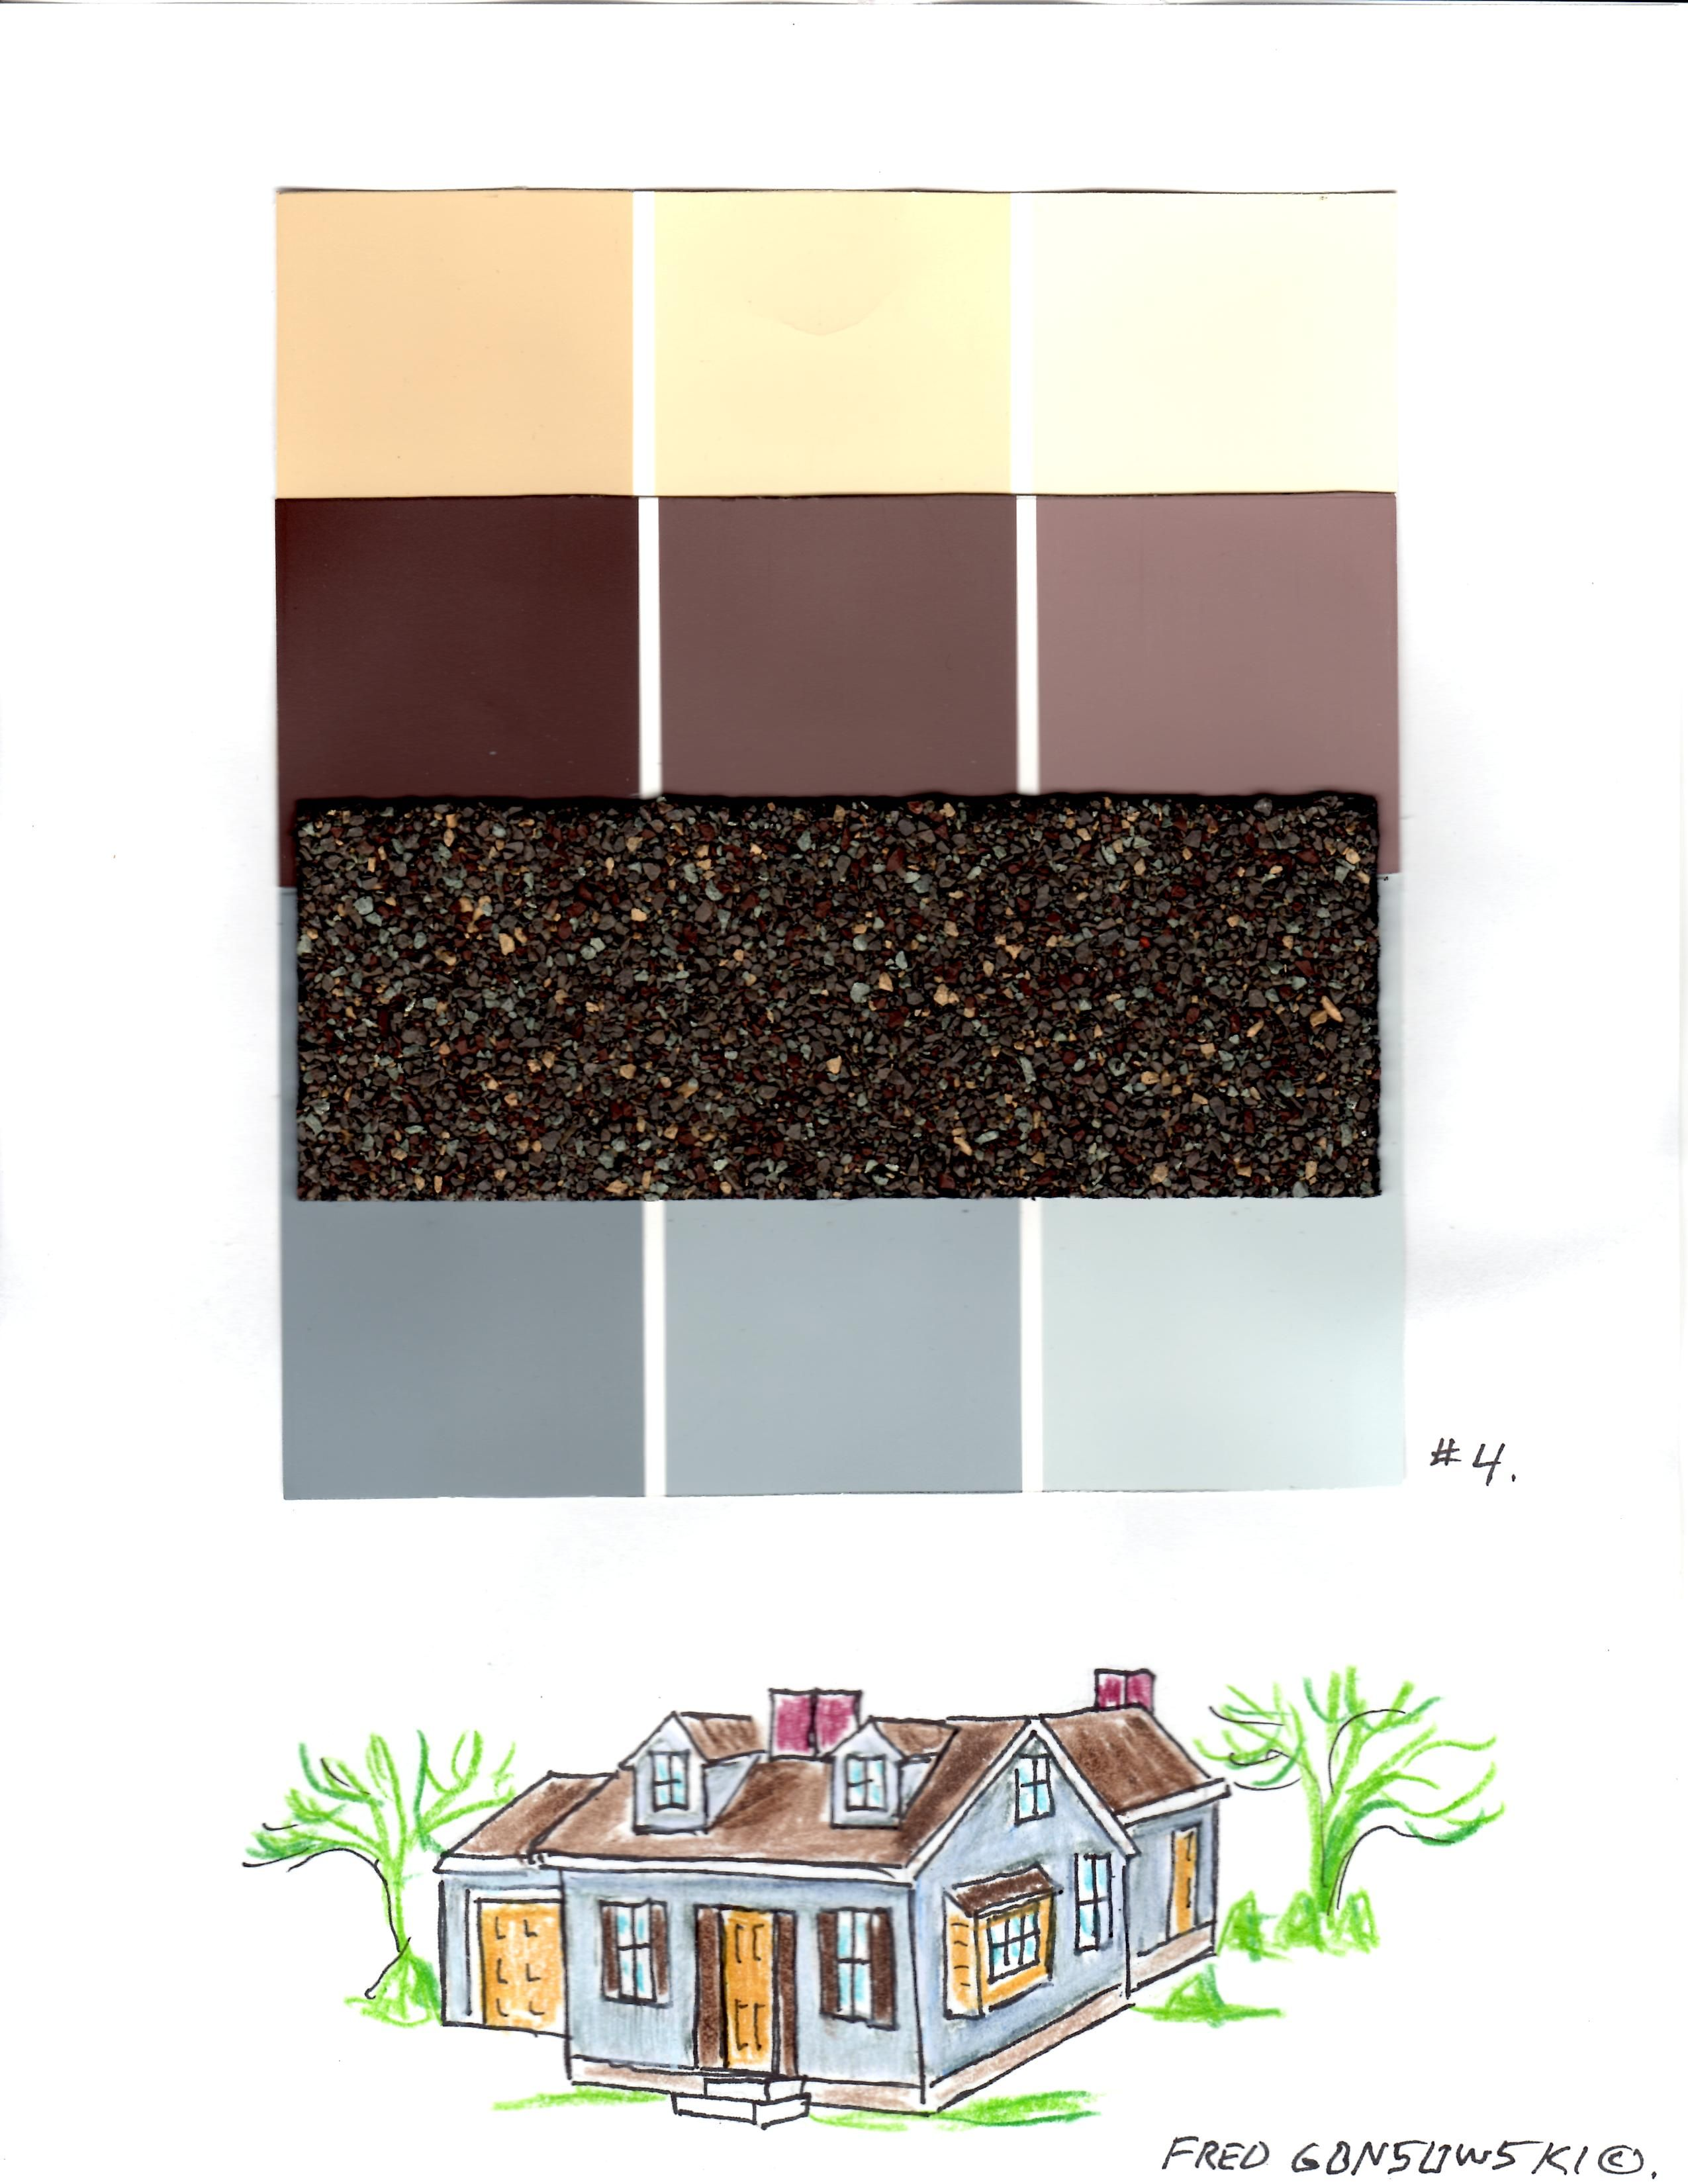 Best Picking The Right Paint Or Siding Color S For Your House Brown Roofs Siding Colors Exterior 400 x 300